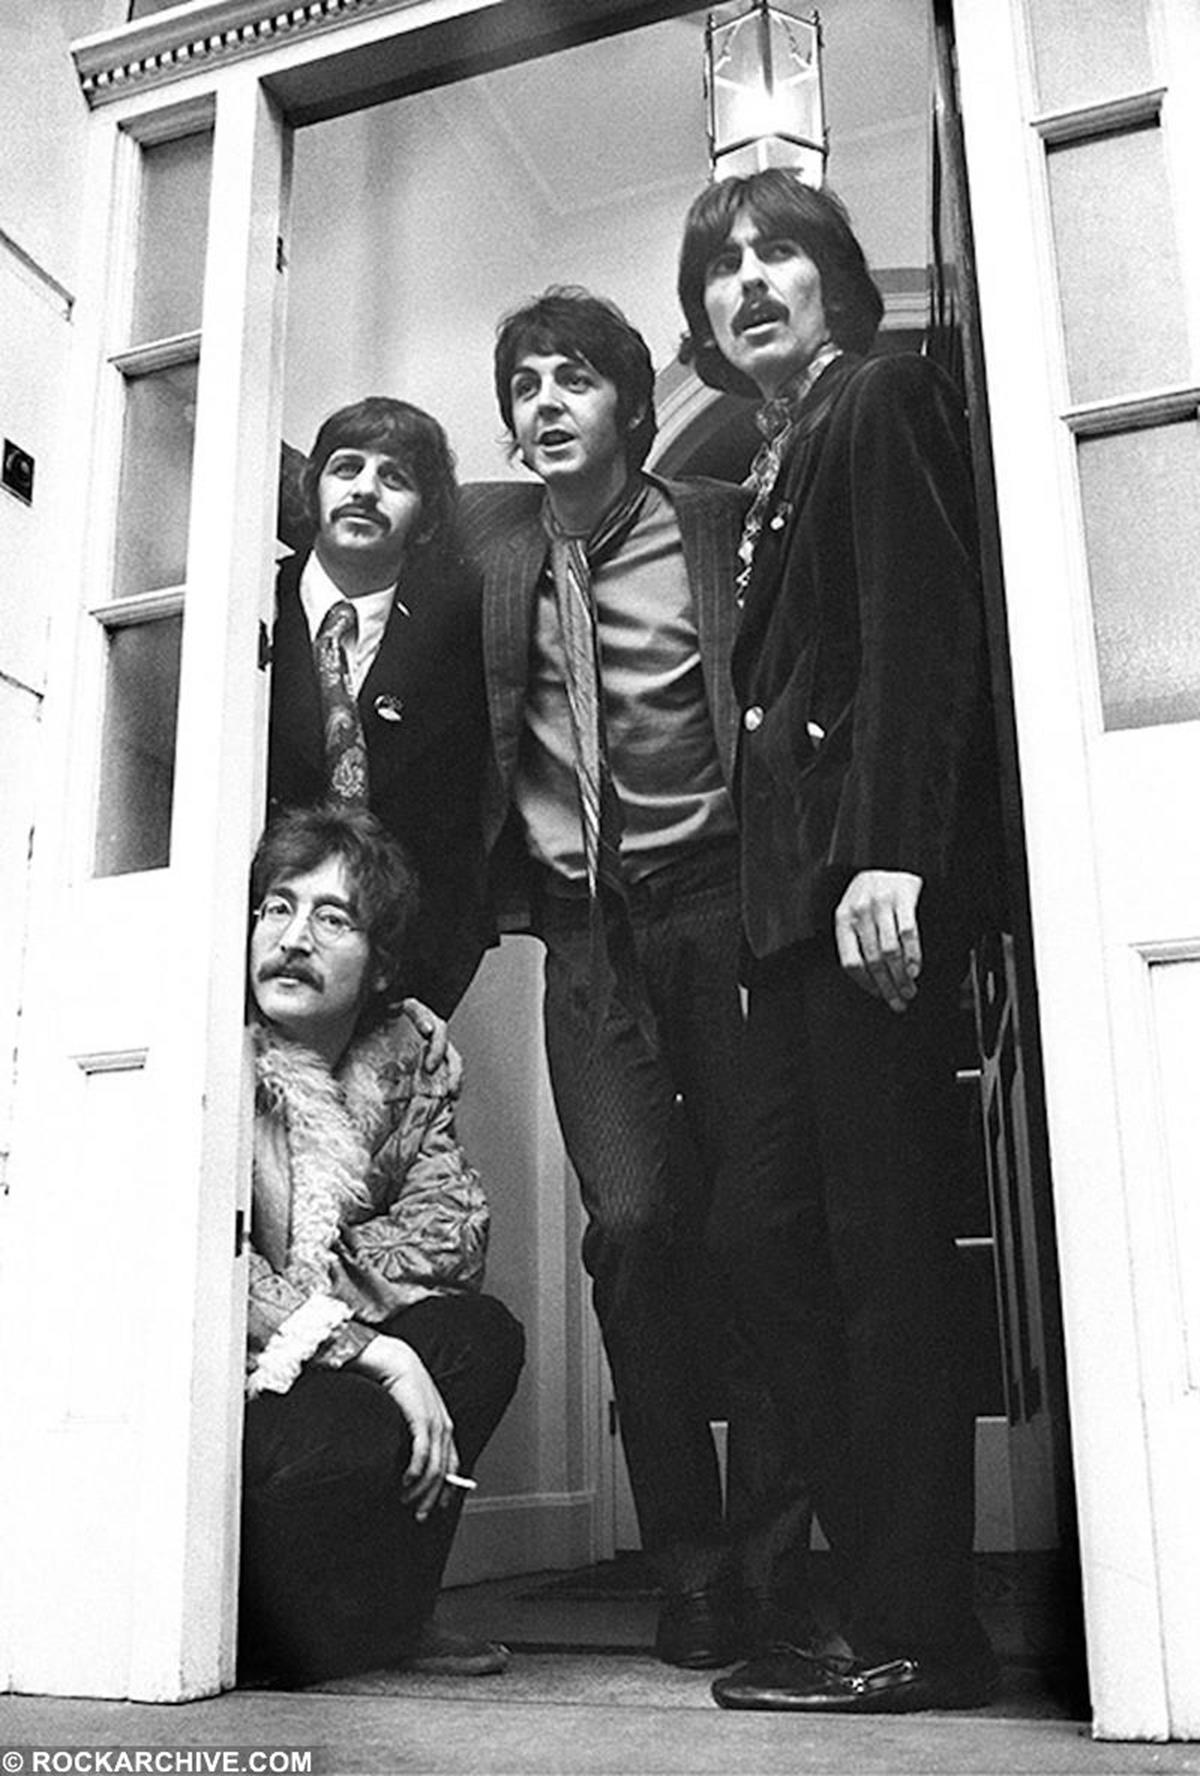 The Beatles in London in 1967, a year before they released The White Album which featured 'Helter Skelter'. © Barrie Wentzell